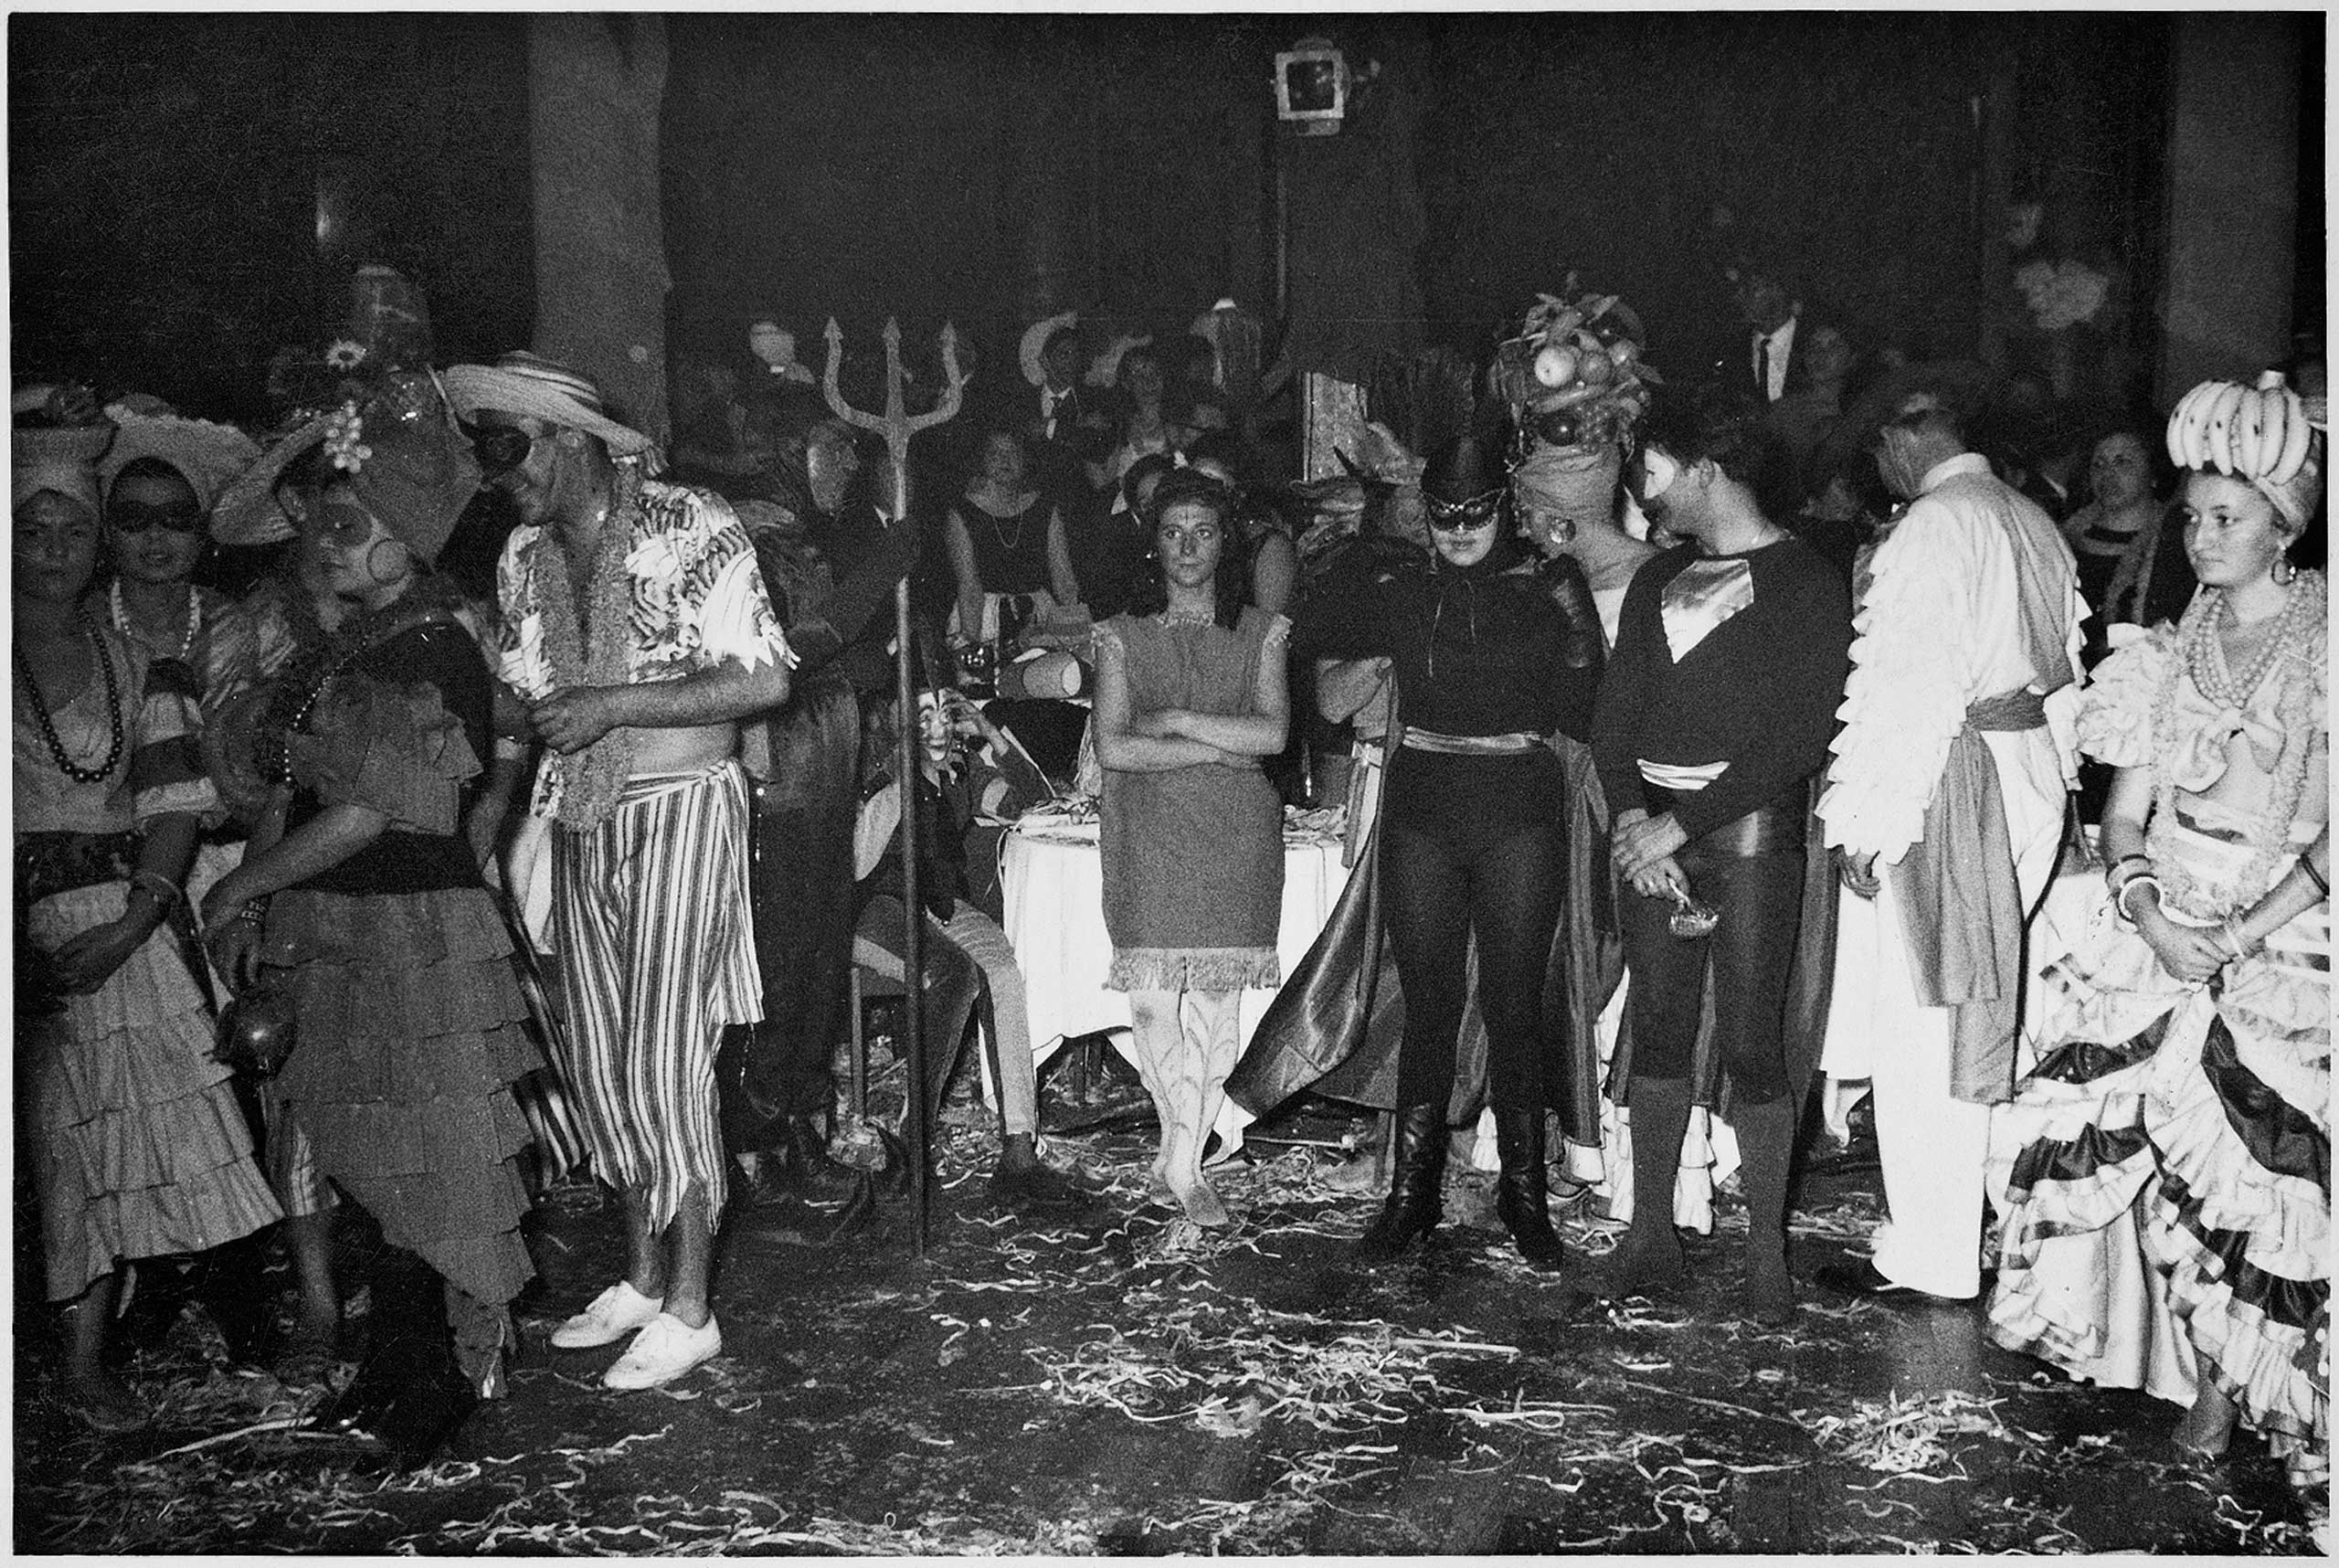 One of the many costume parties at the Uaddan Hotel